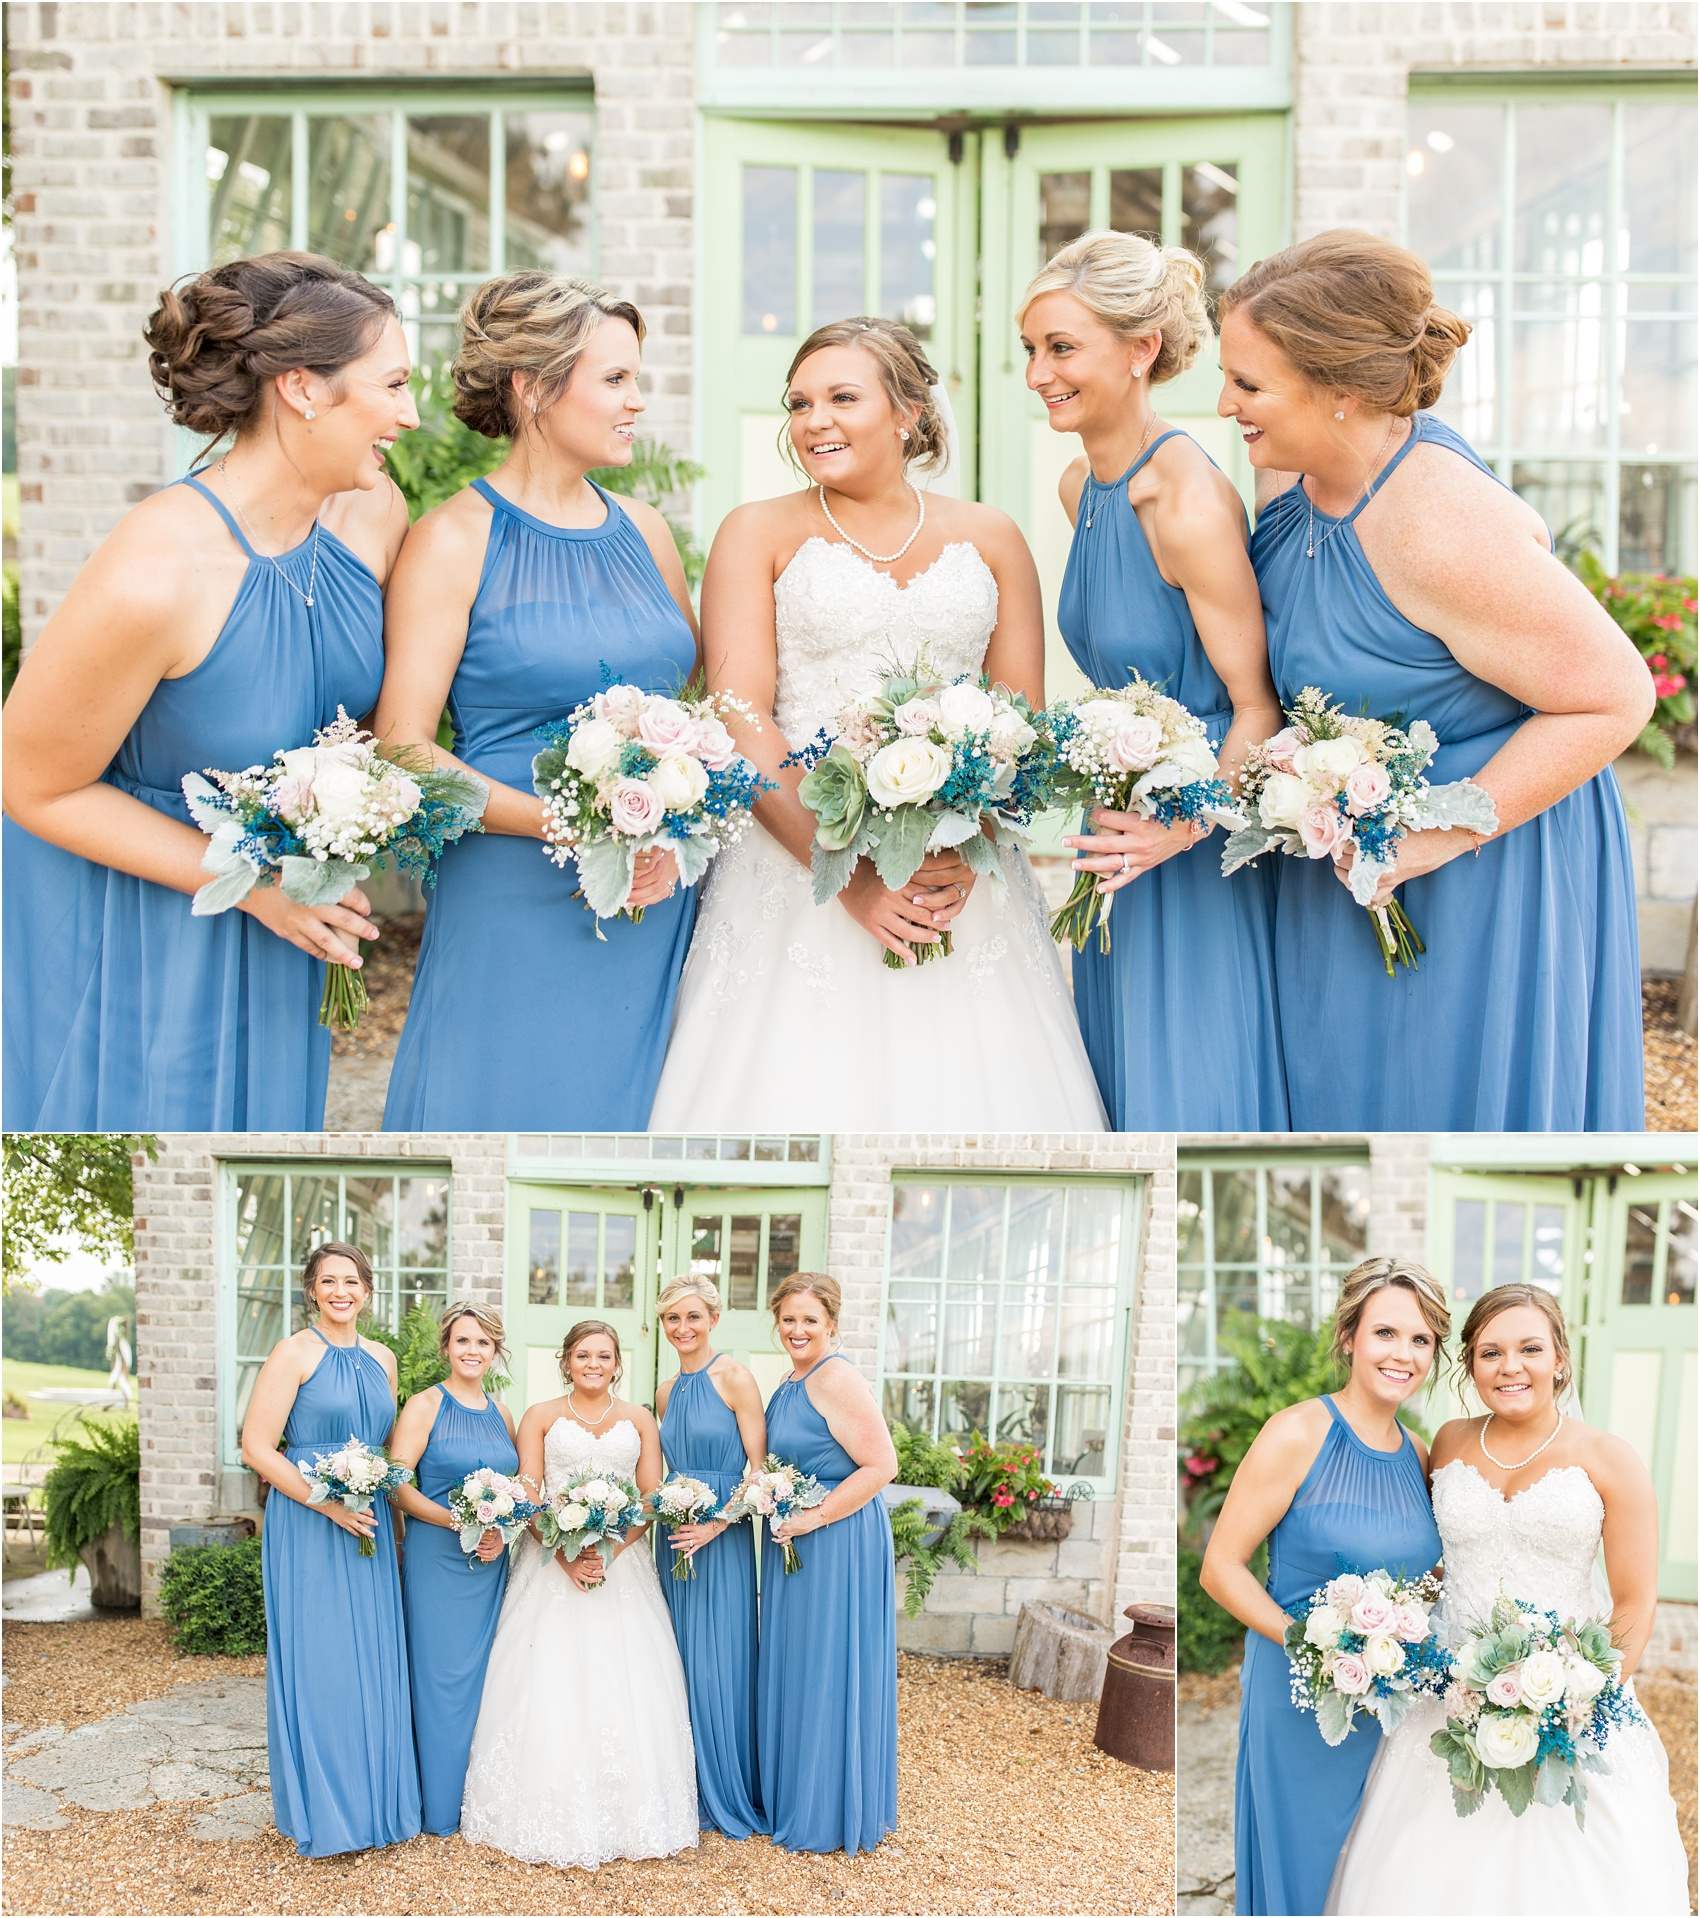 Savannah Eve Photography- Hardin-Petty Wedding-53.jpg